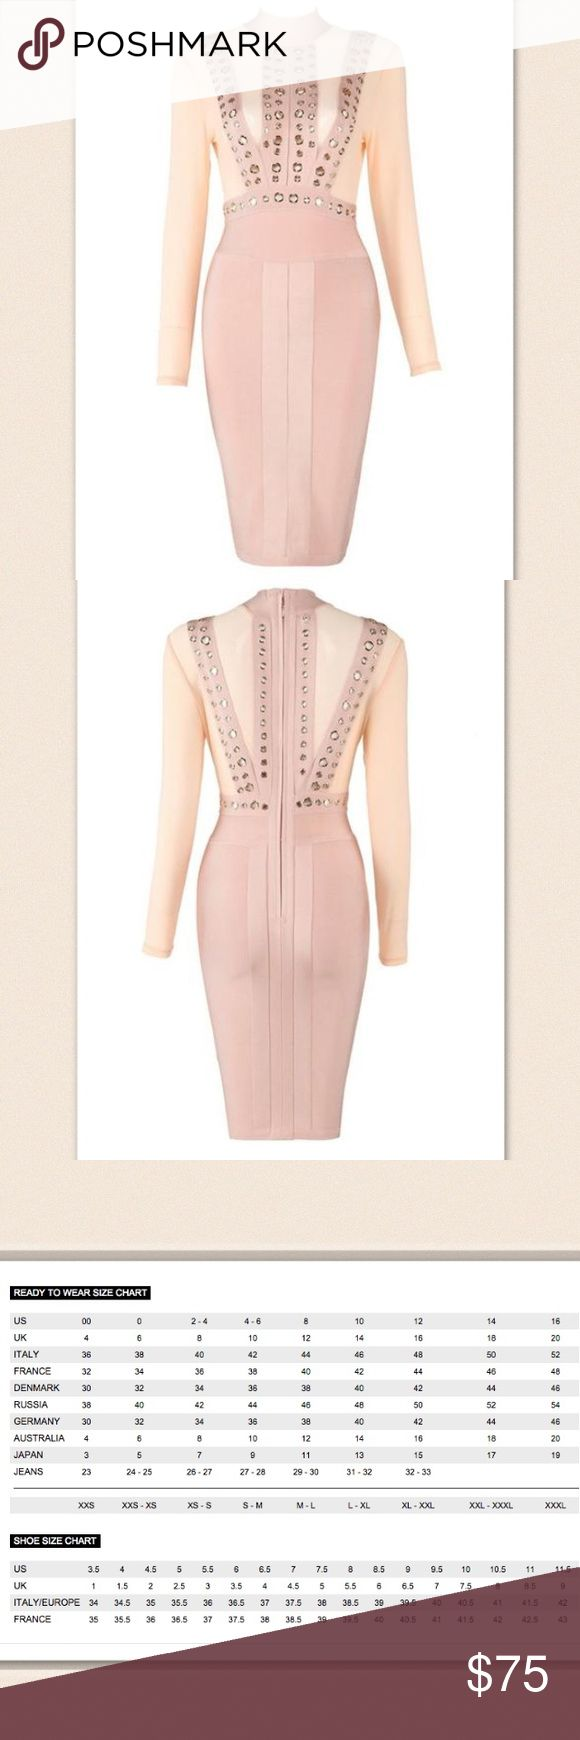 Pink/Cream Cassie Bandage Dress NWT Retail, no flaws, check closet for light blue color Bae Sik Dresses Long Sleeve